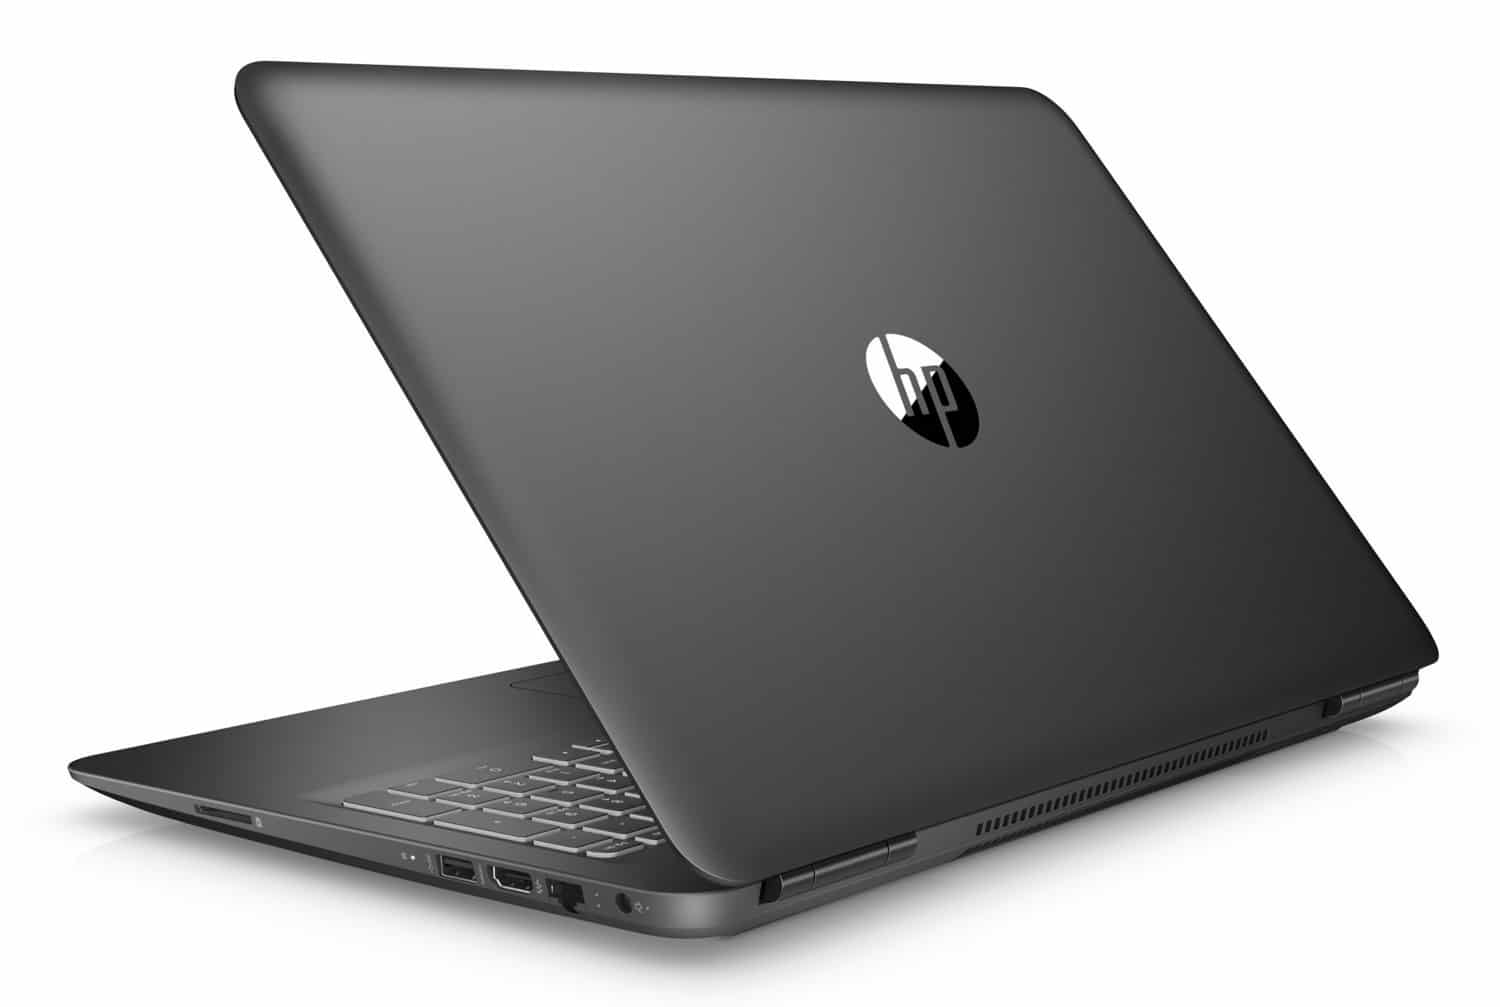 HP Pavilion 15-bc314nf, PC 15 pouces Full i5 Kaby GTX 950M 6Go (619€)